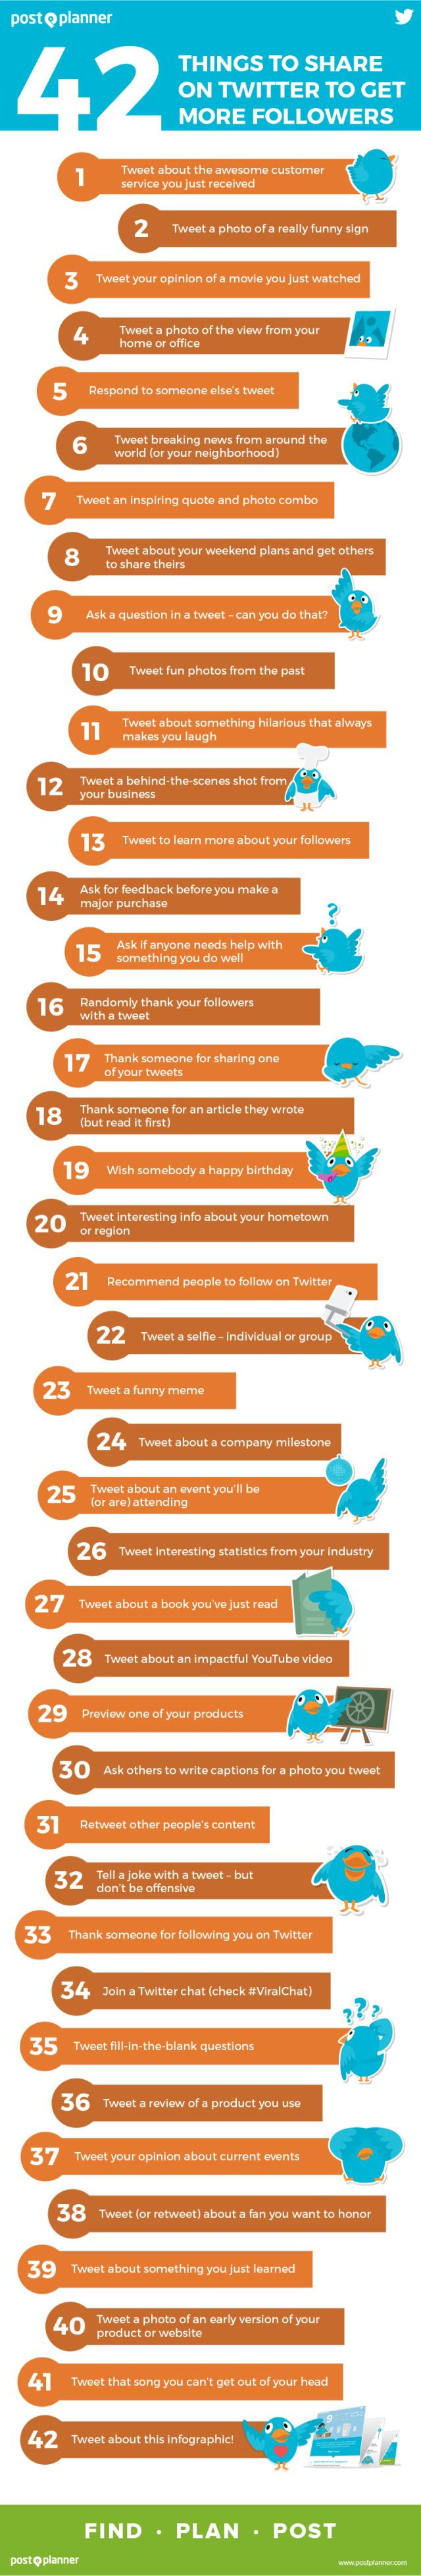 42 Things to Share on Twitter to Get More Valuable Followers #Infographic